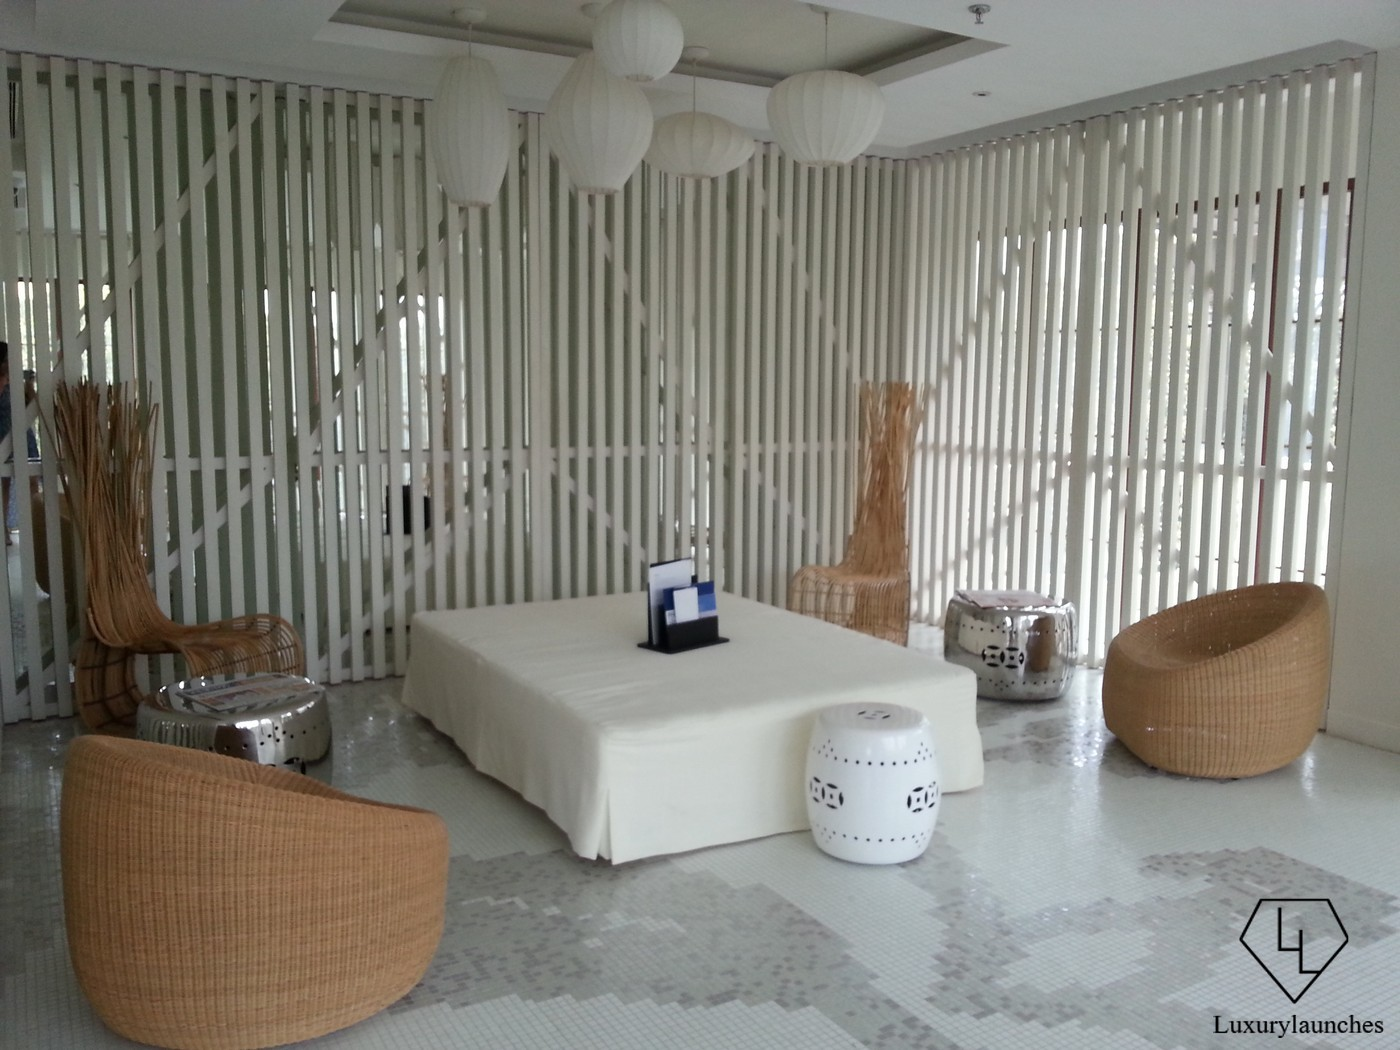 Waiting area at Explore, the spa